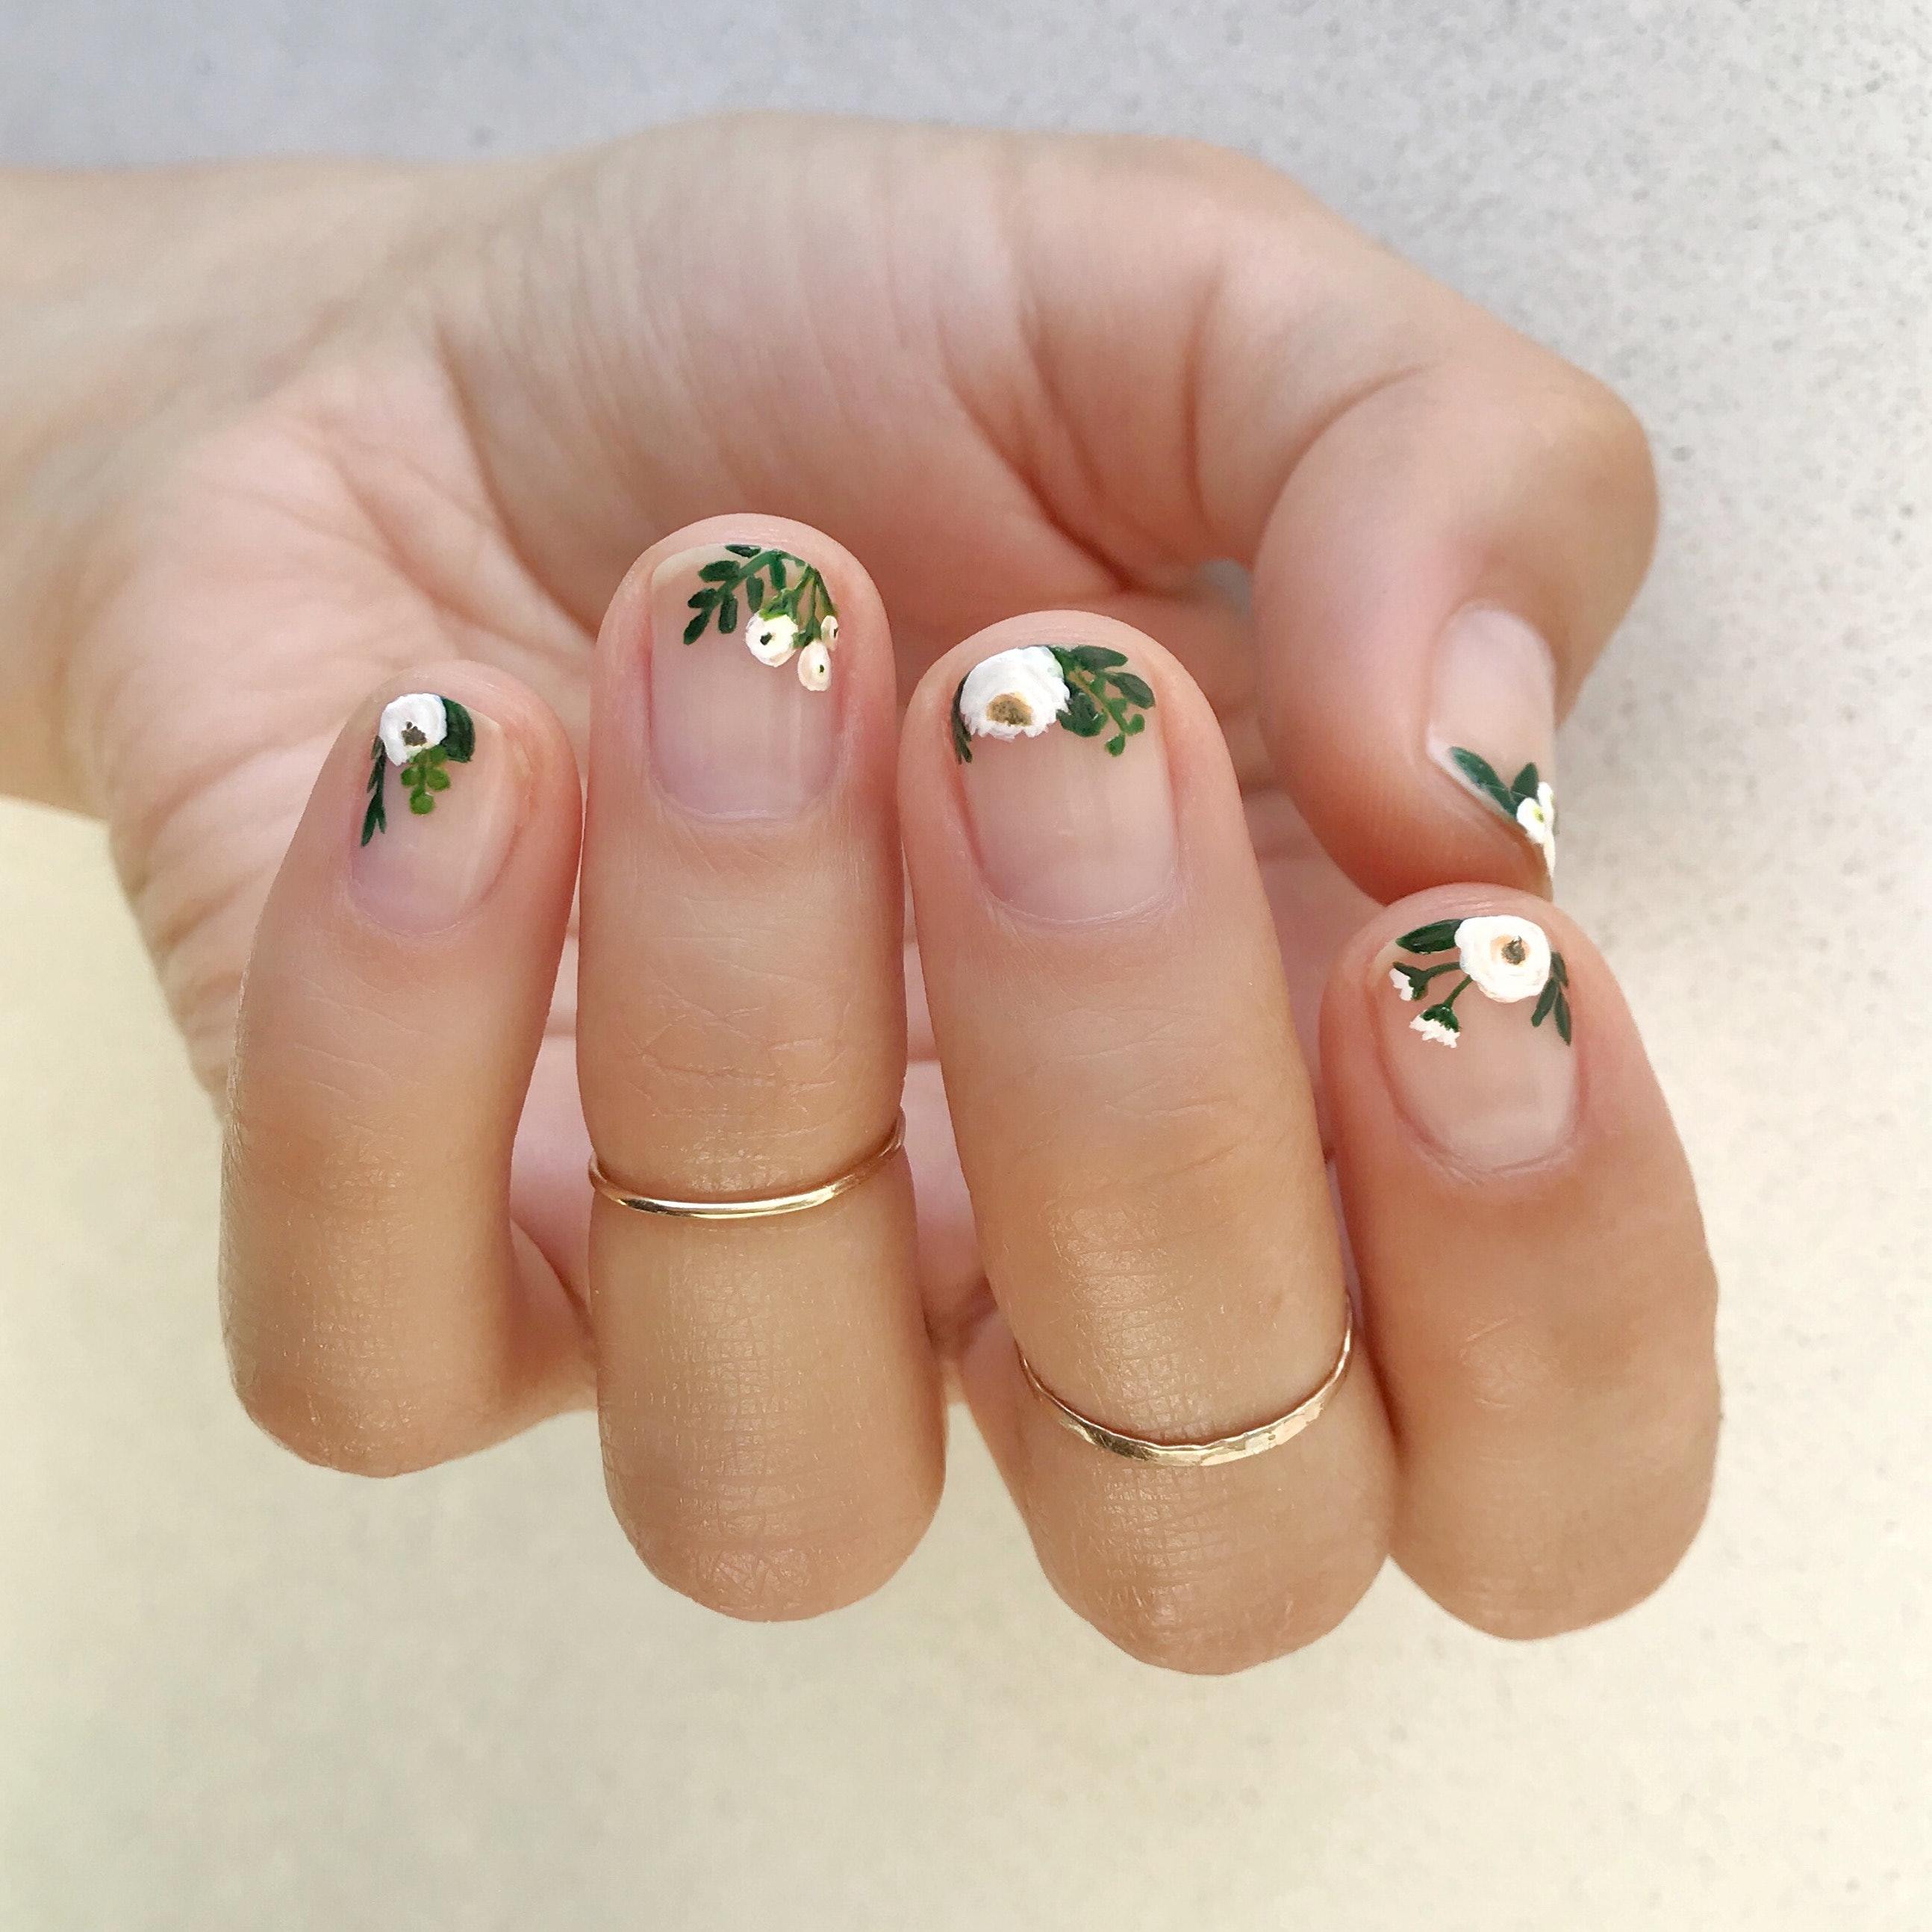 The Best 2019 Nail Polish Trends To Show Your Manicurist, Stat